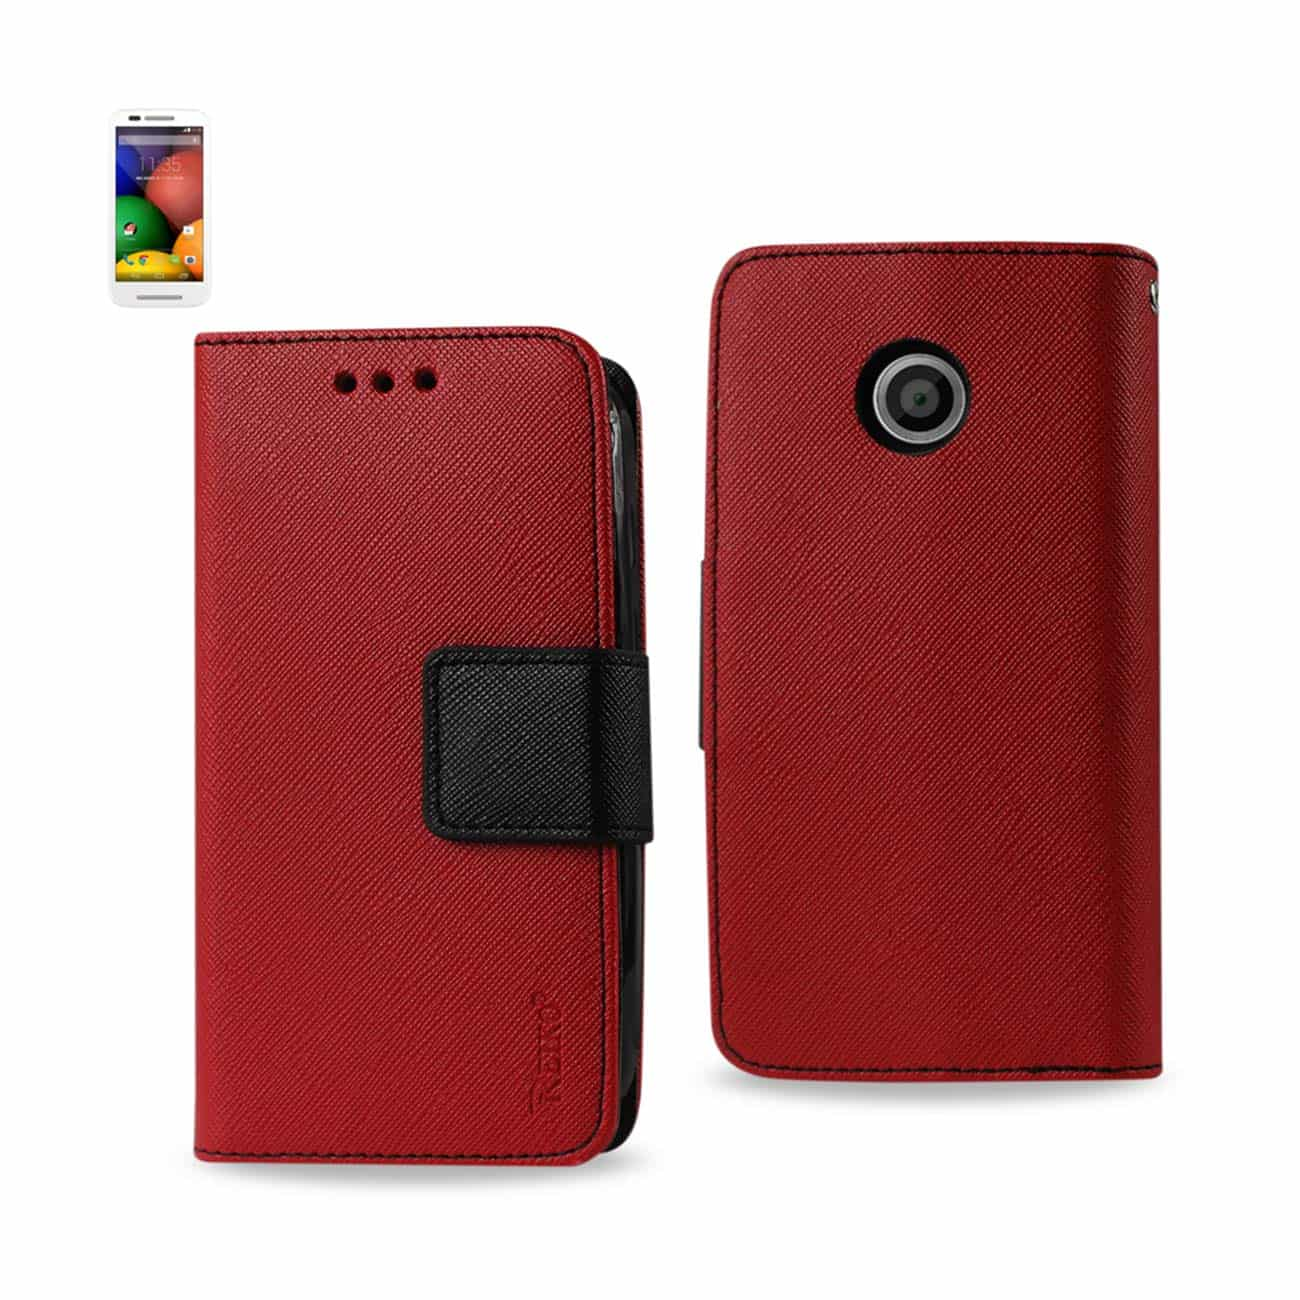 MOTOROLA MOTO E 3-IN-1 WALLET CASE IN RED